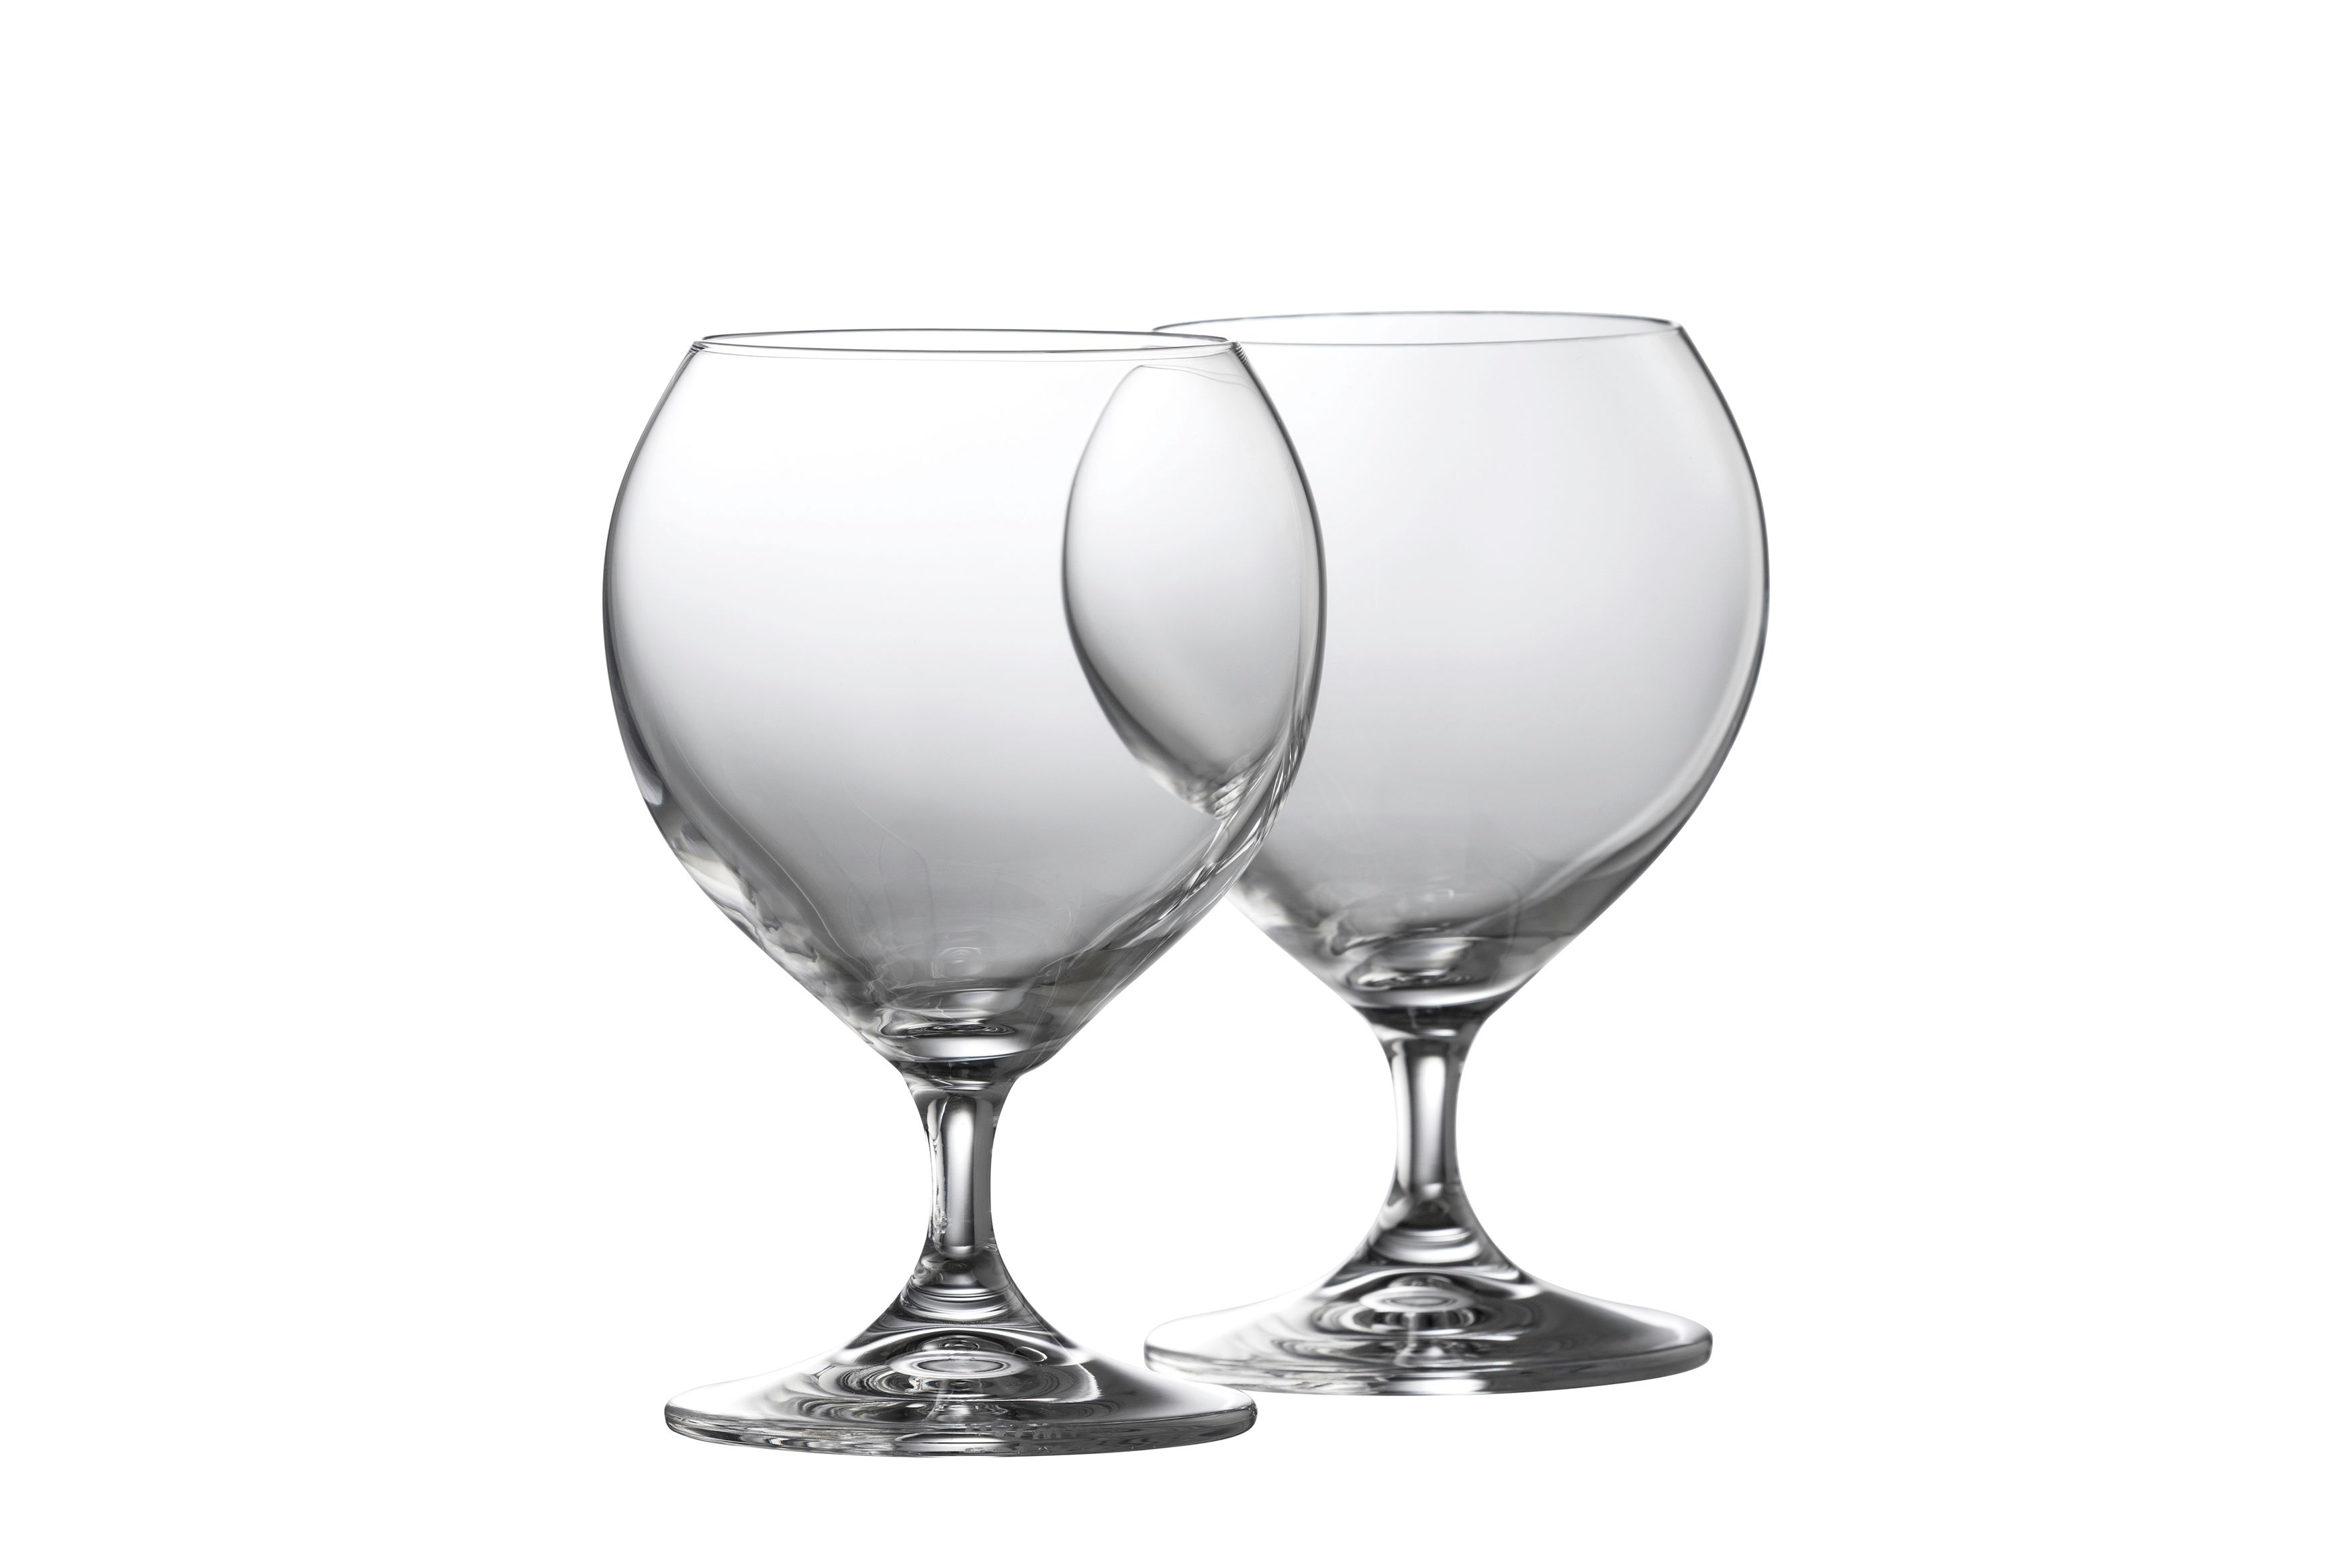 Image of Galway Clarity Crème Liqour Glasses (Set of 6)